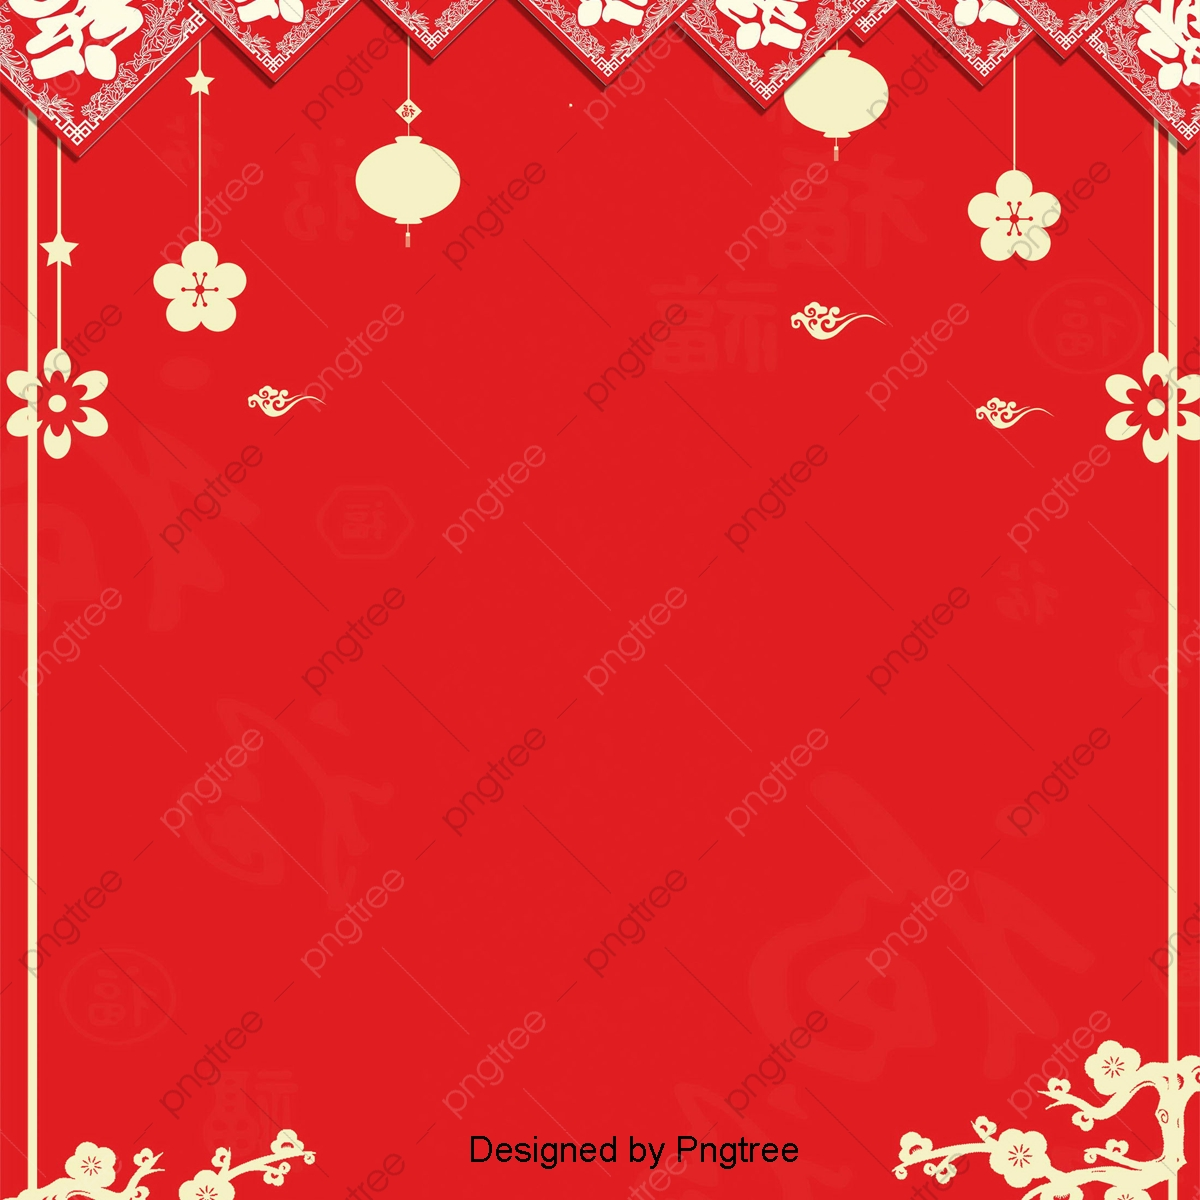 12+ New Year Background Free